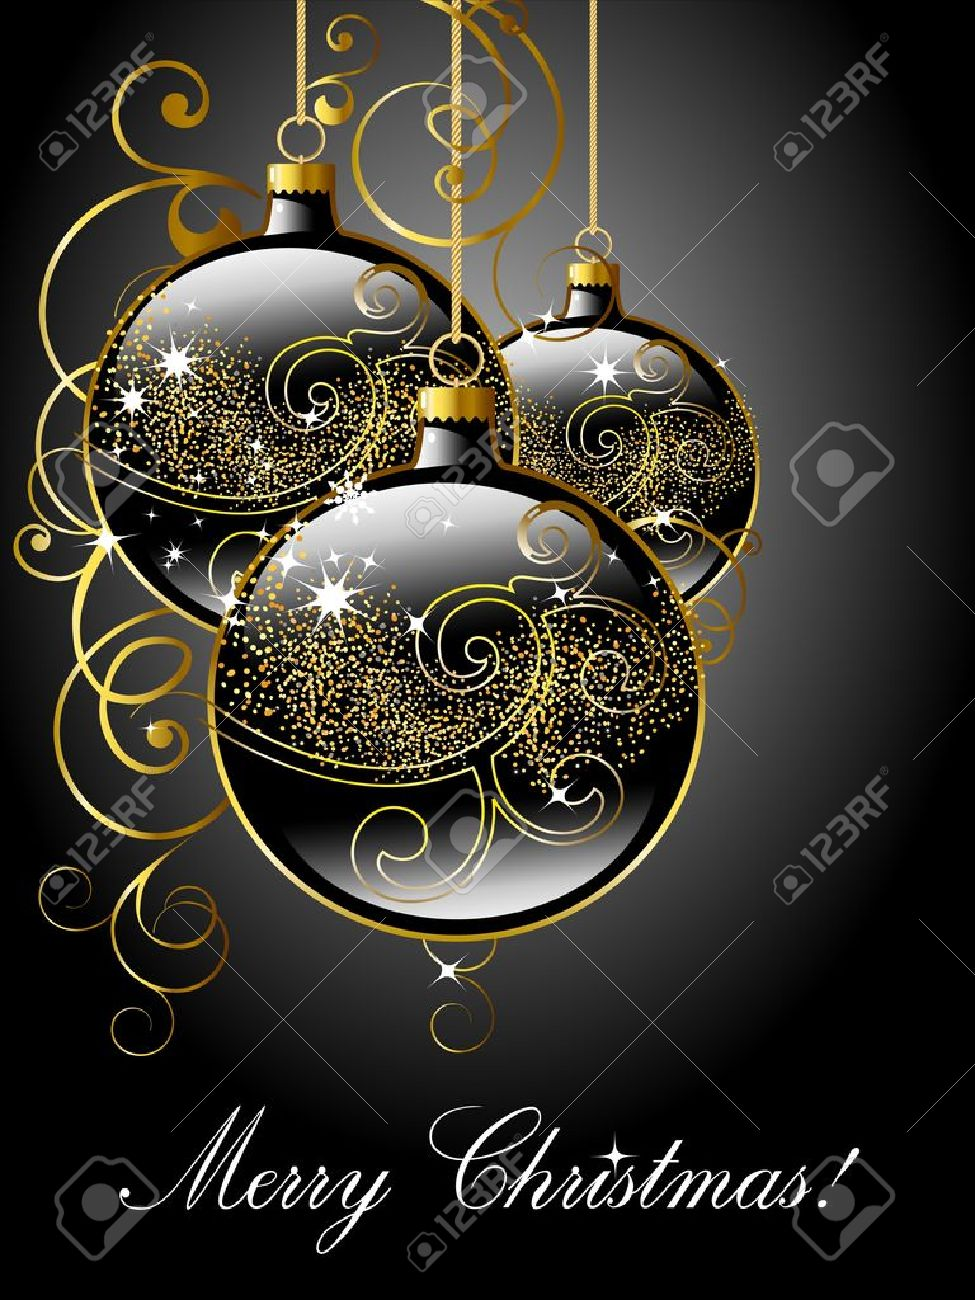 Christmas Flourish Images & Stock Pictures. Royalty Free Christmas ...